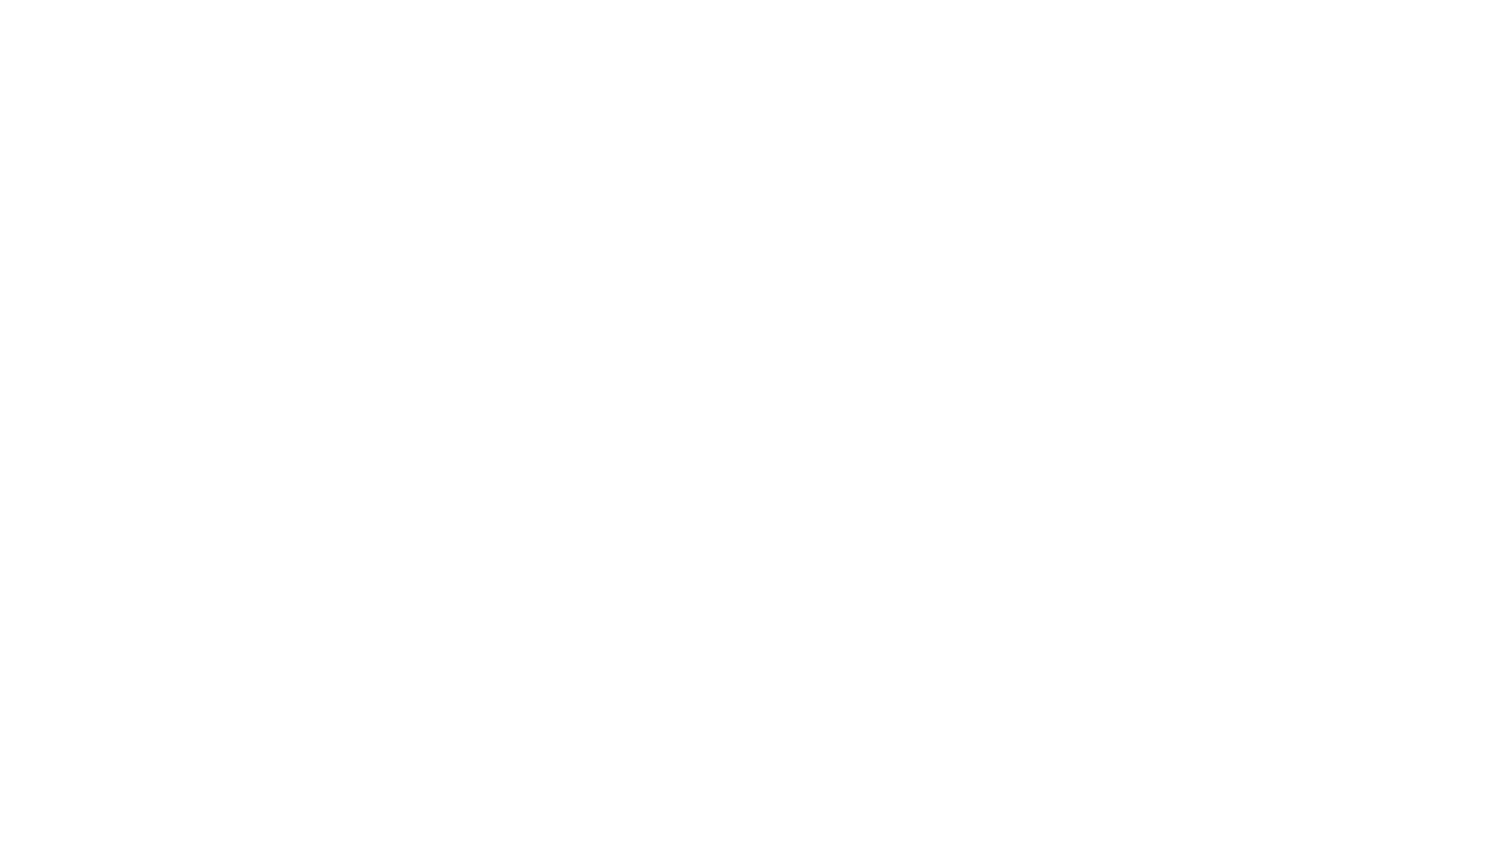 Michael Levitt Productions